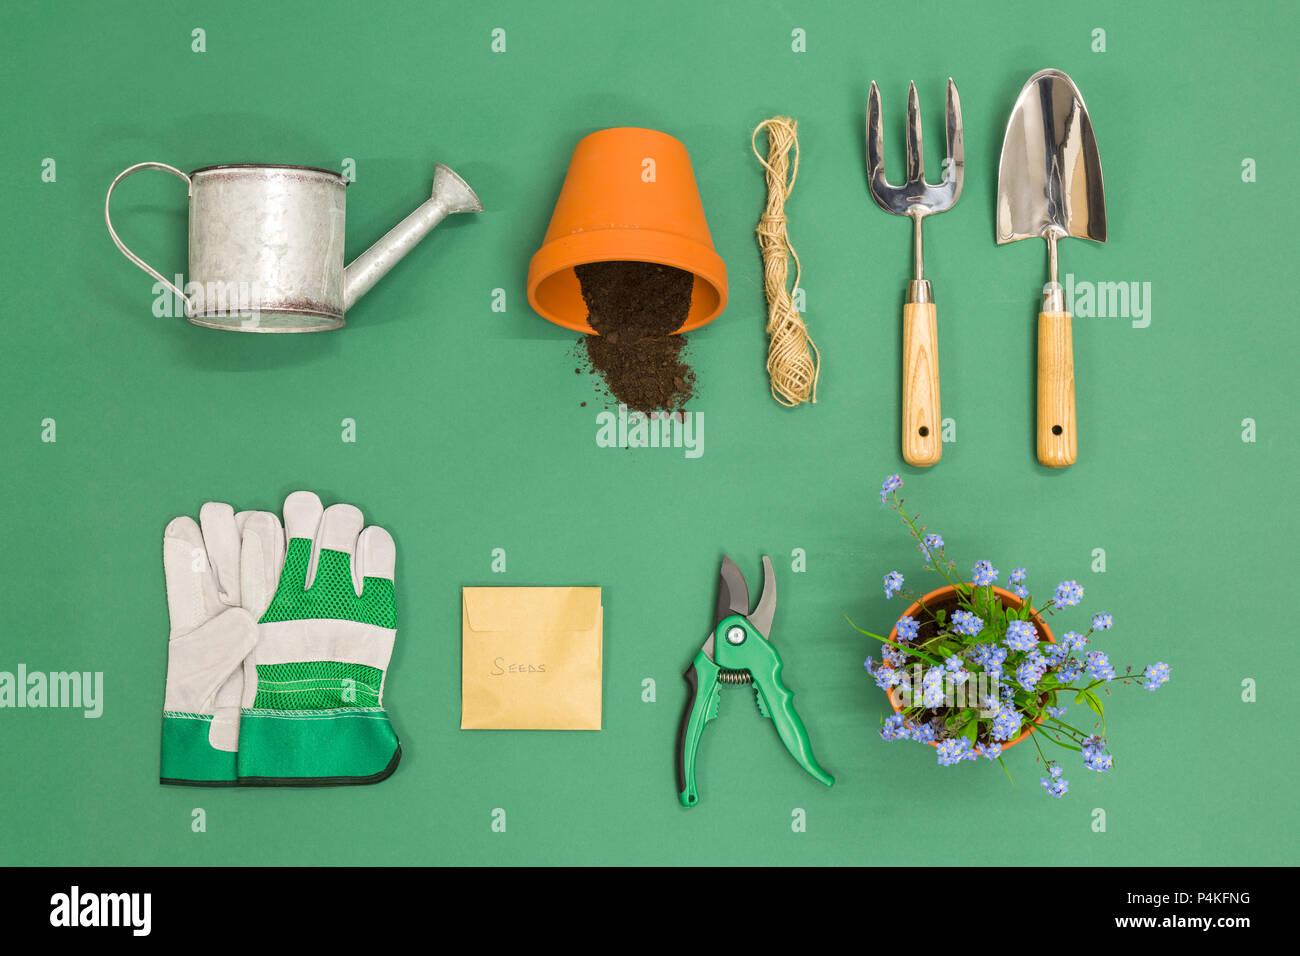 A flat lay arrangement of Gardening equipment on a green background - Stock Image